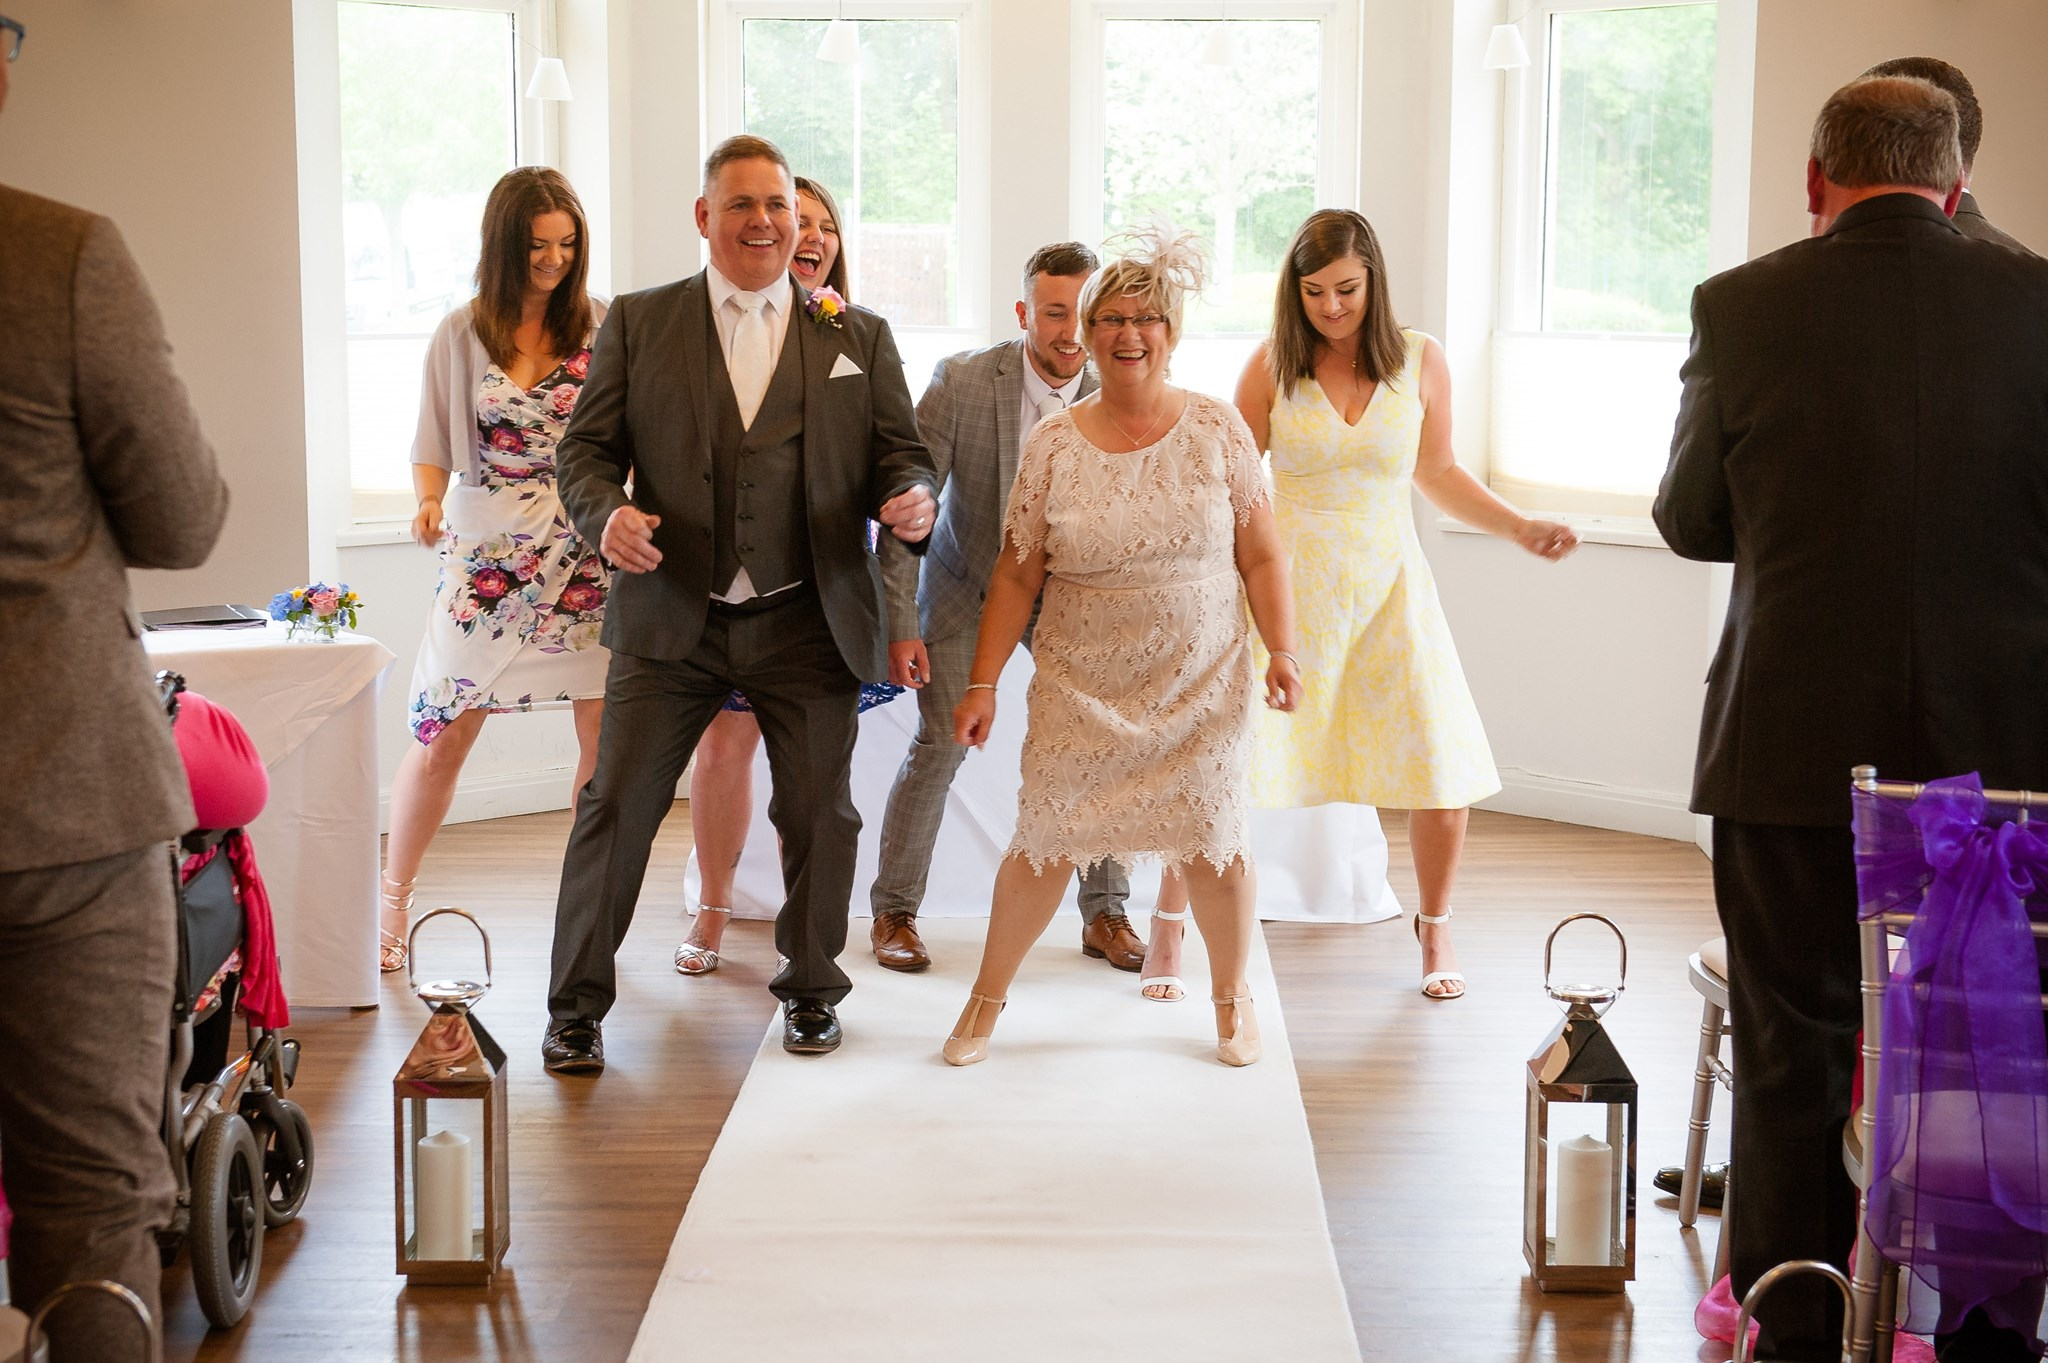 Our Wedding Day dance May 2017